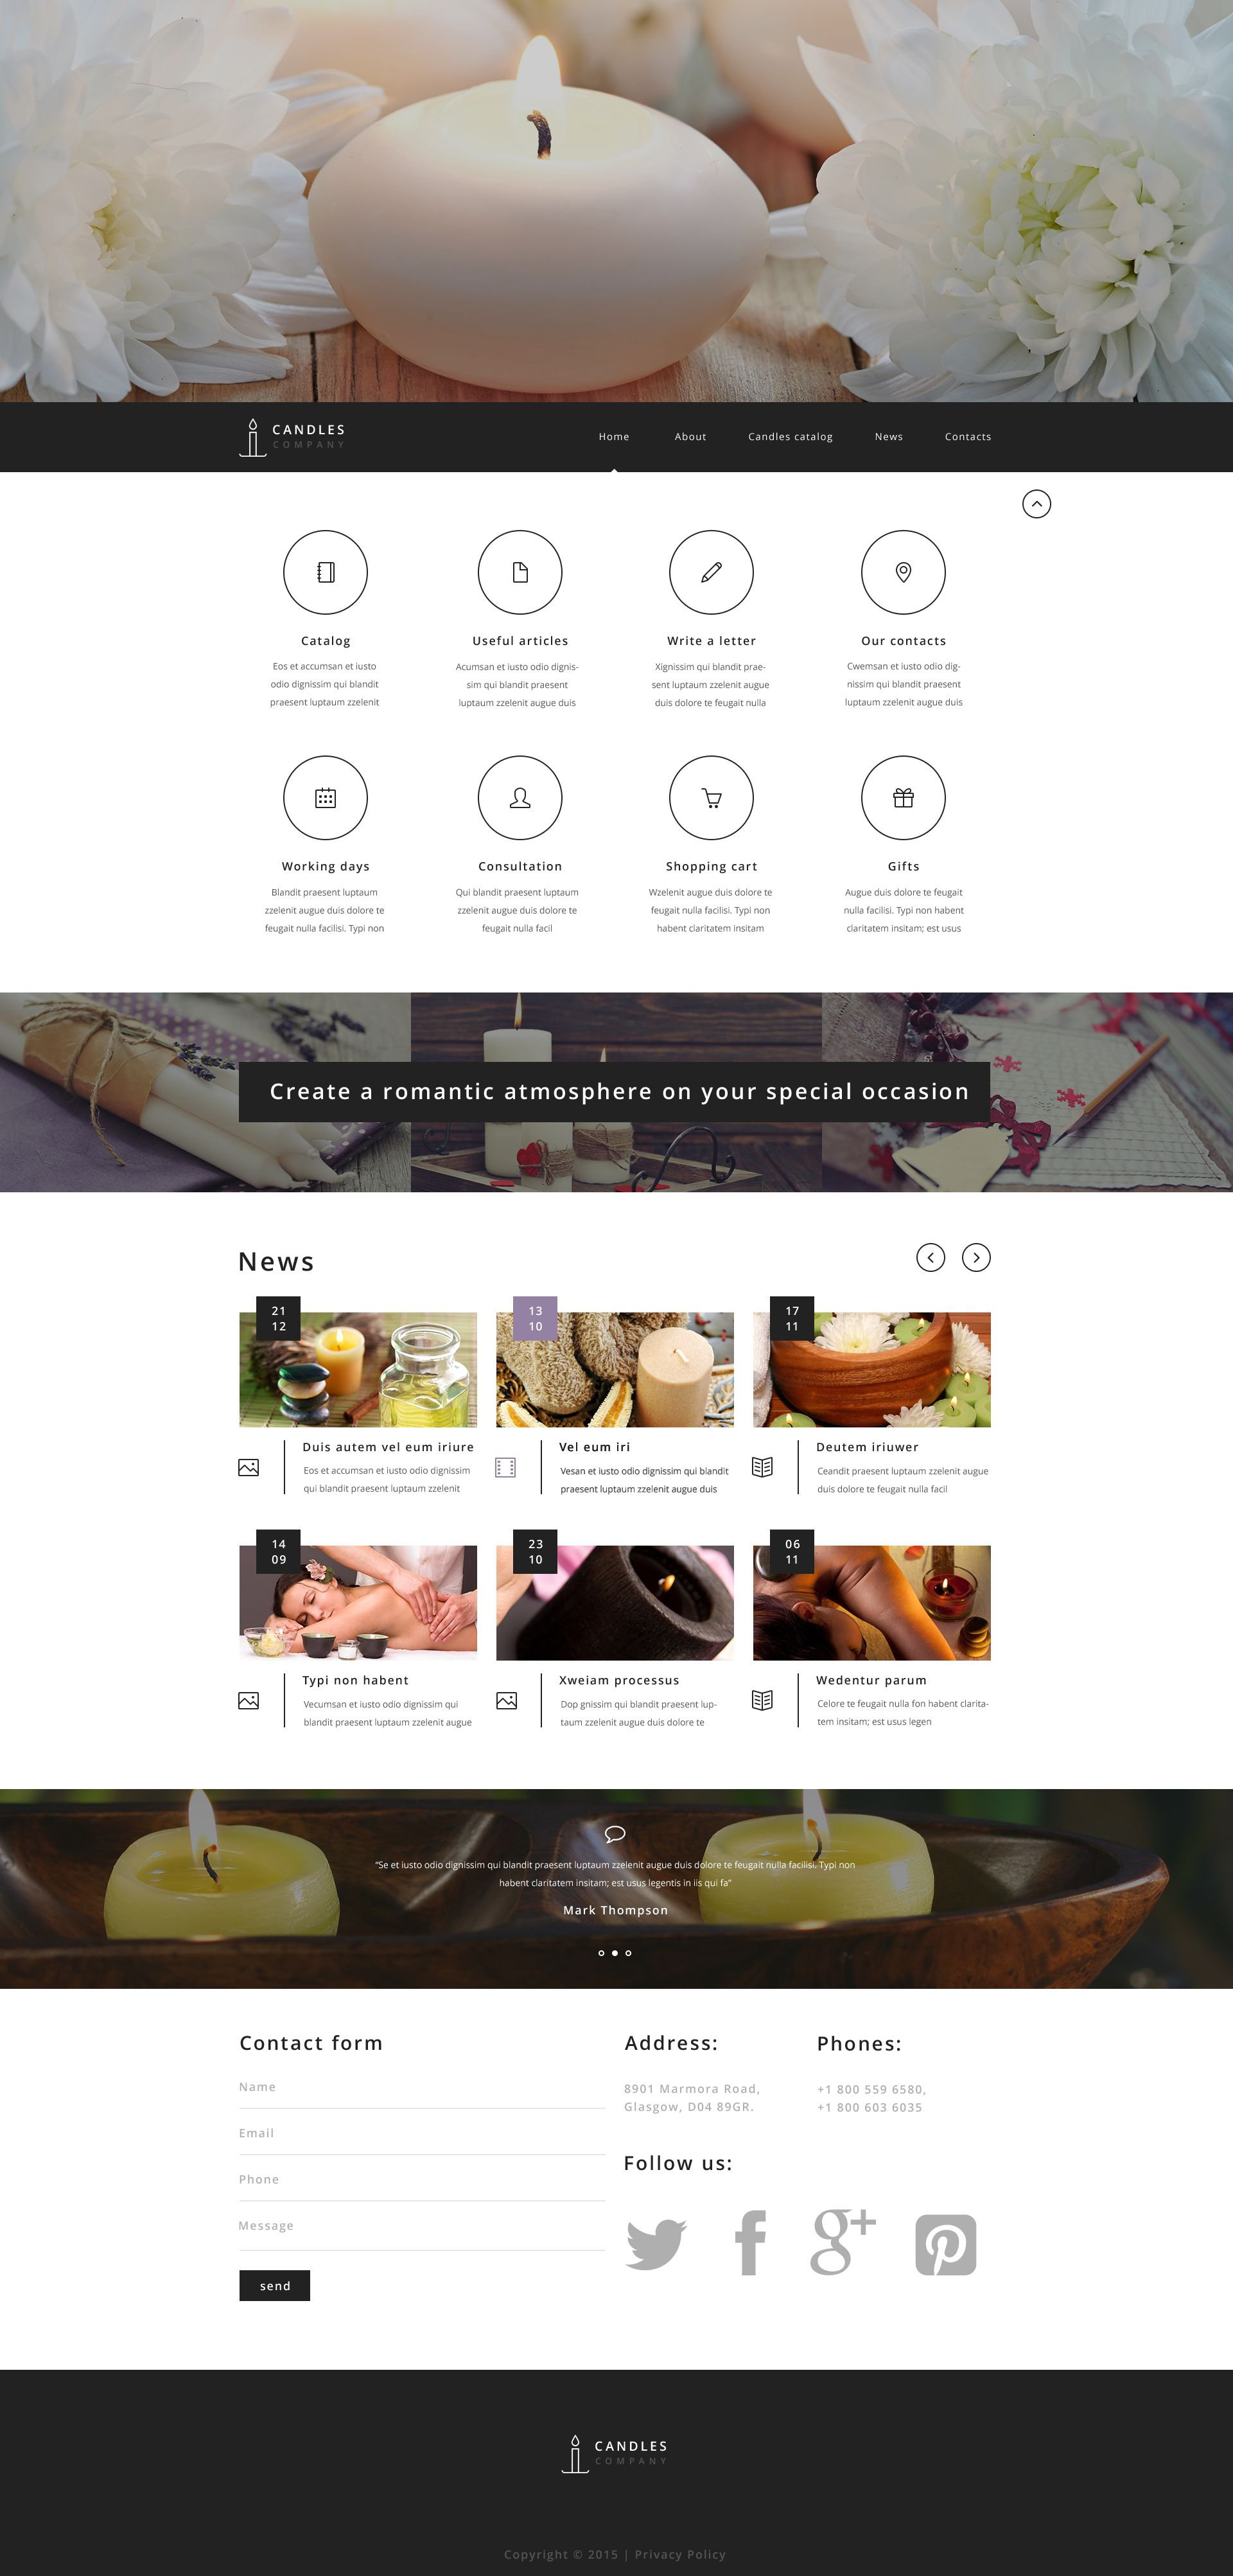 Candle Company Website Template